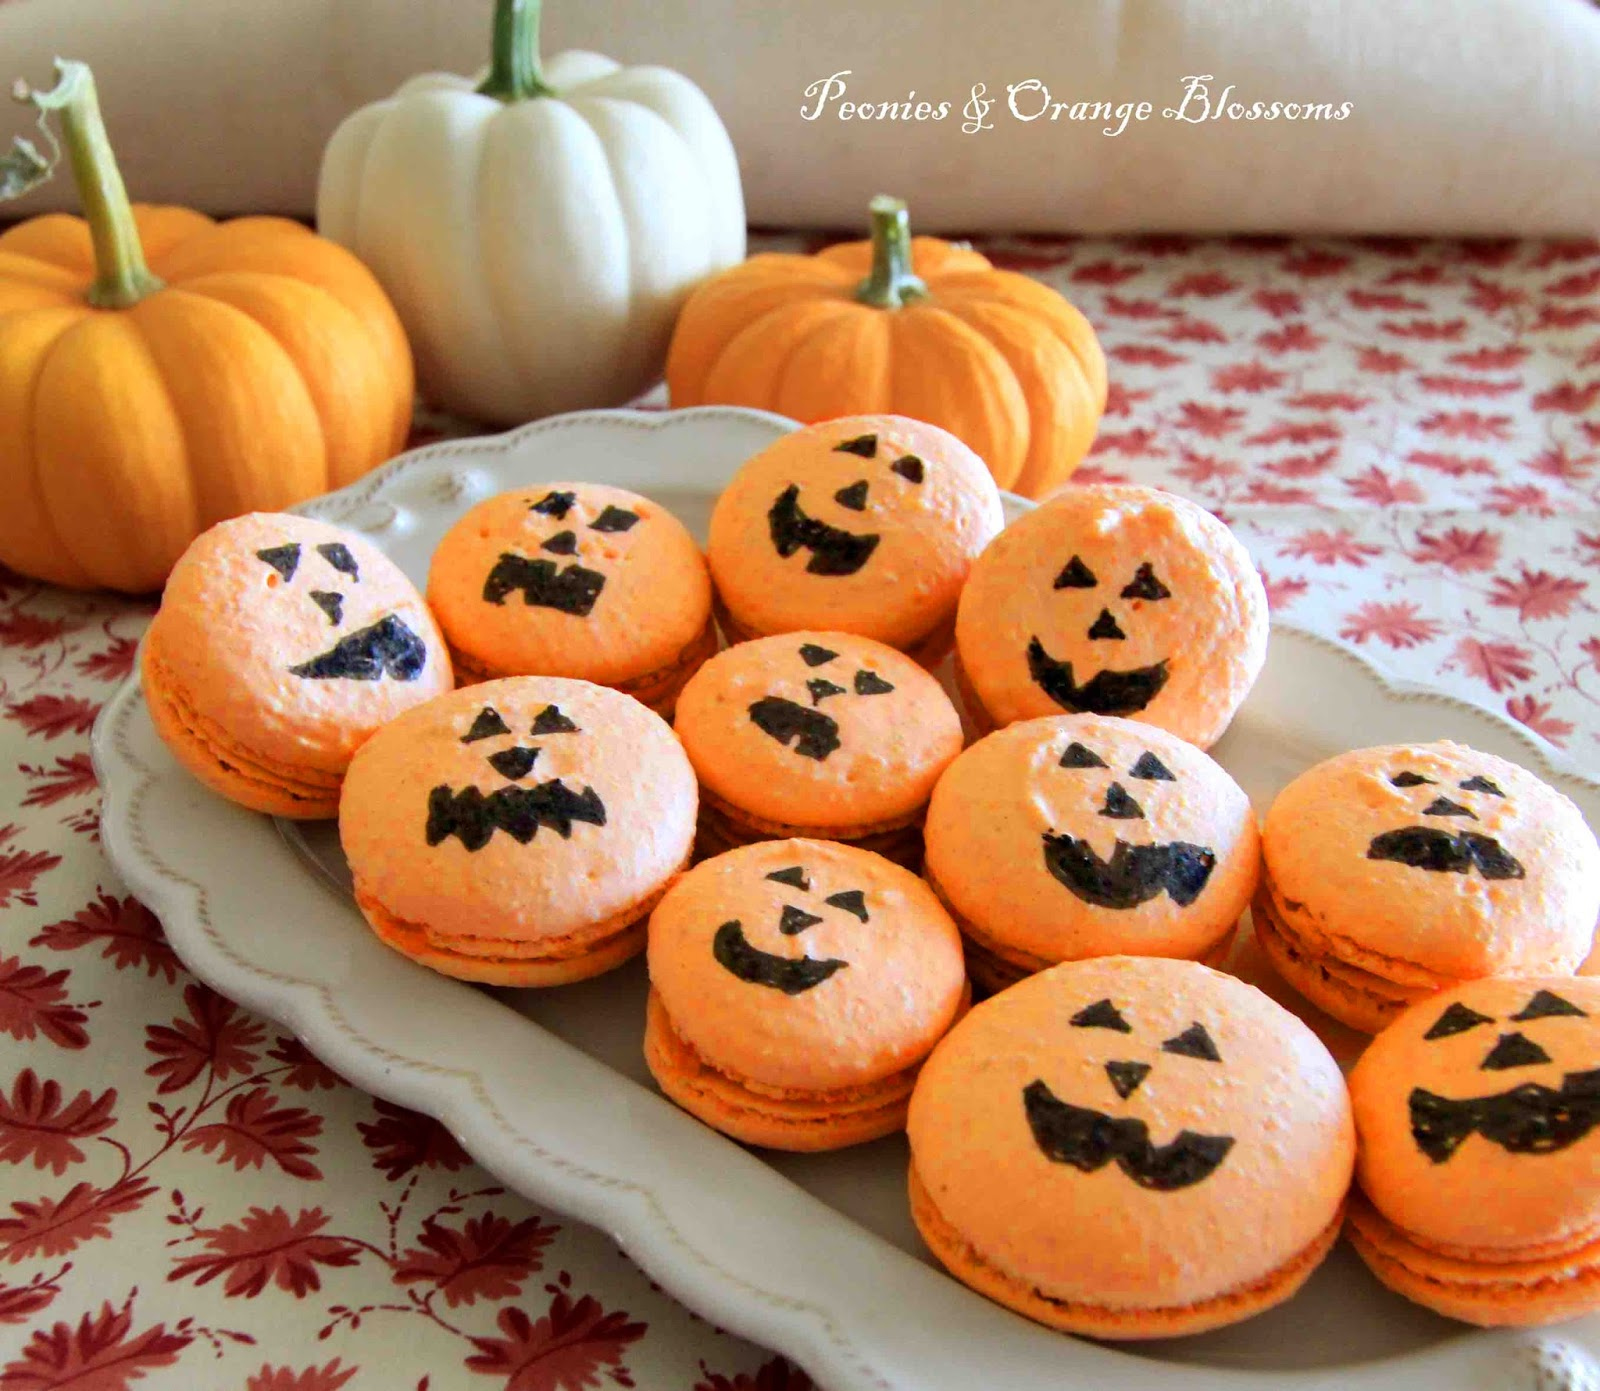 was inspired by the pumpkin macarons in the Williams Sonoma catalog: